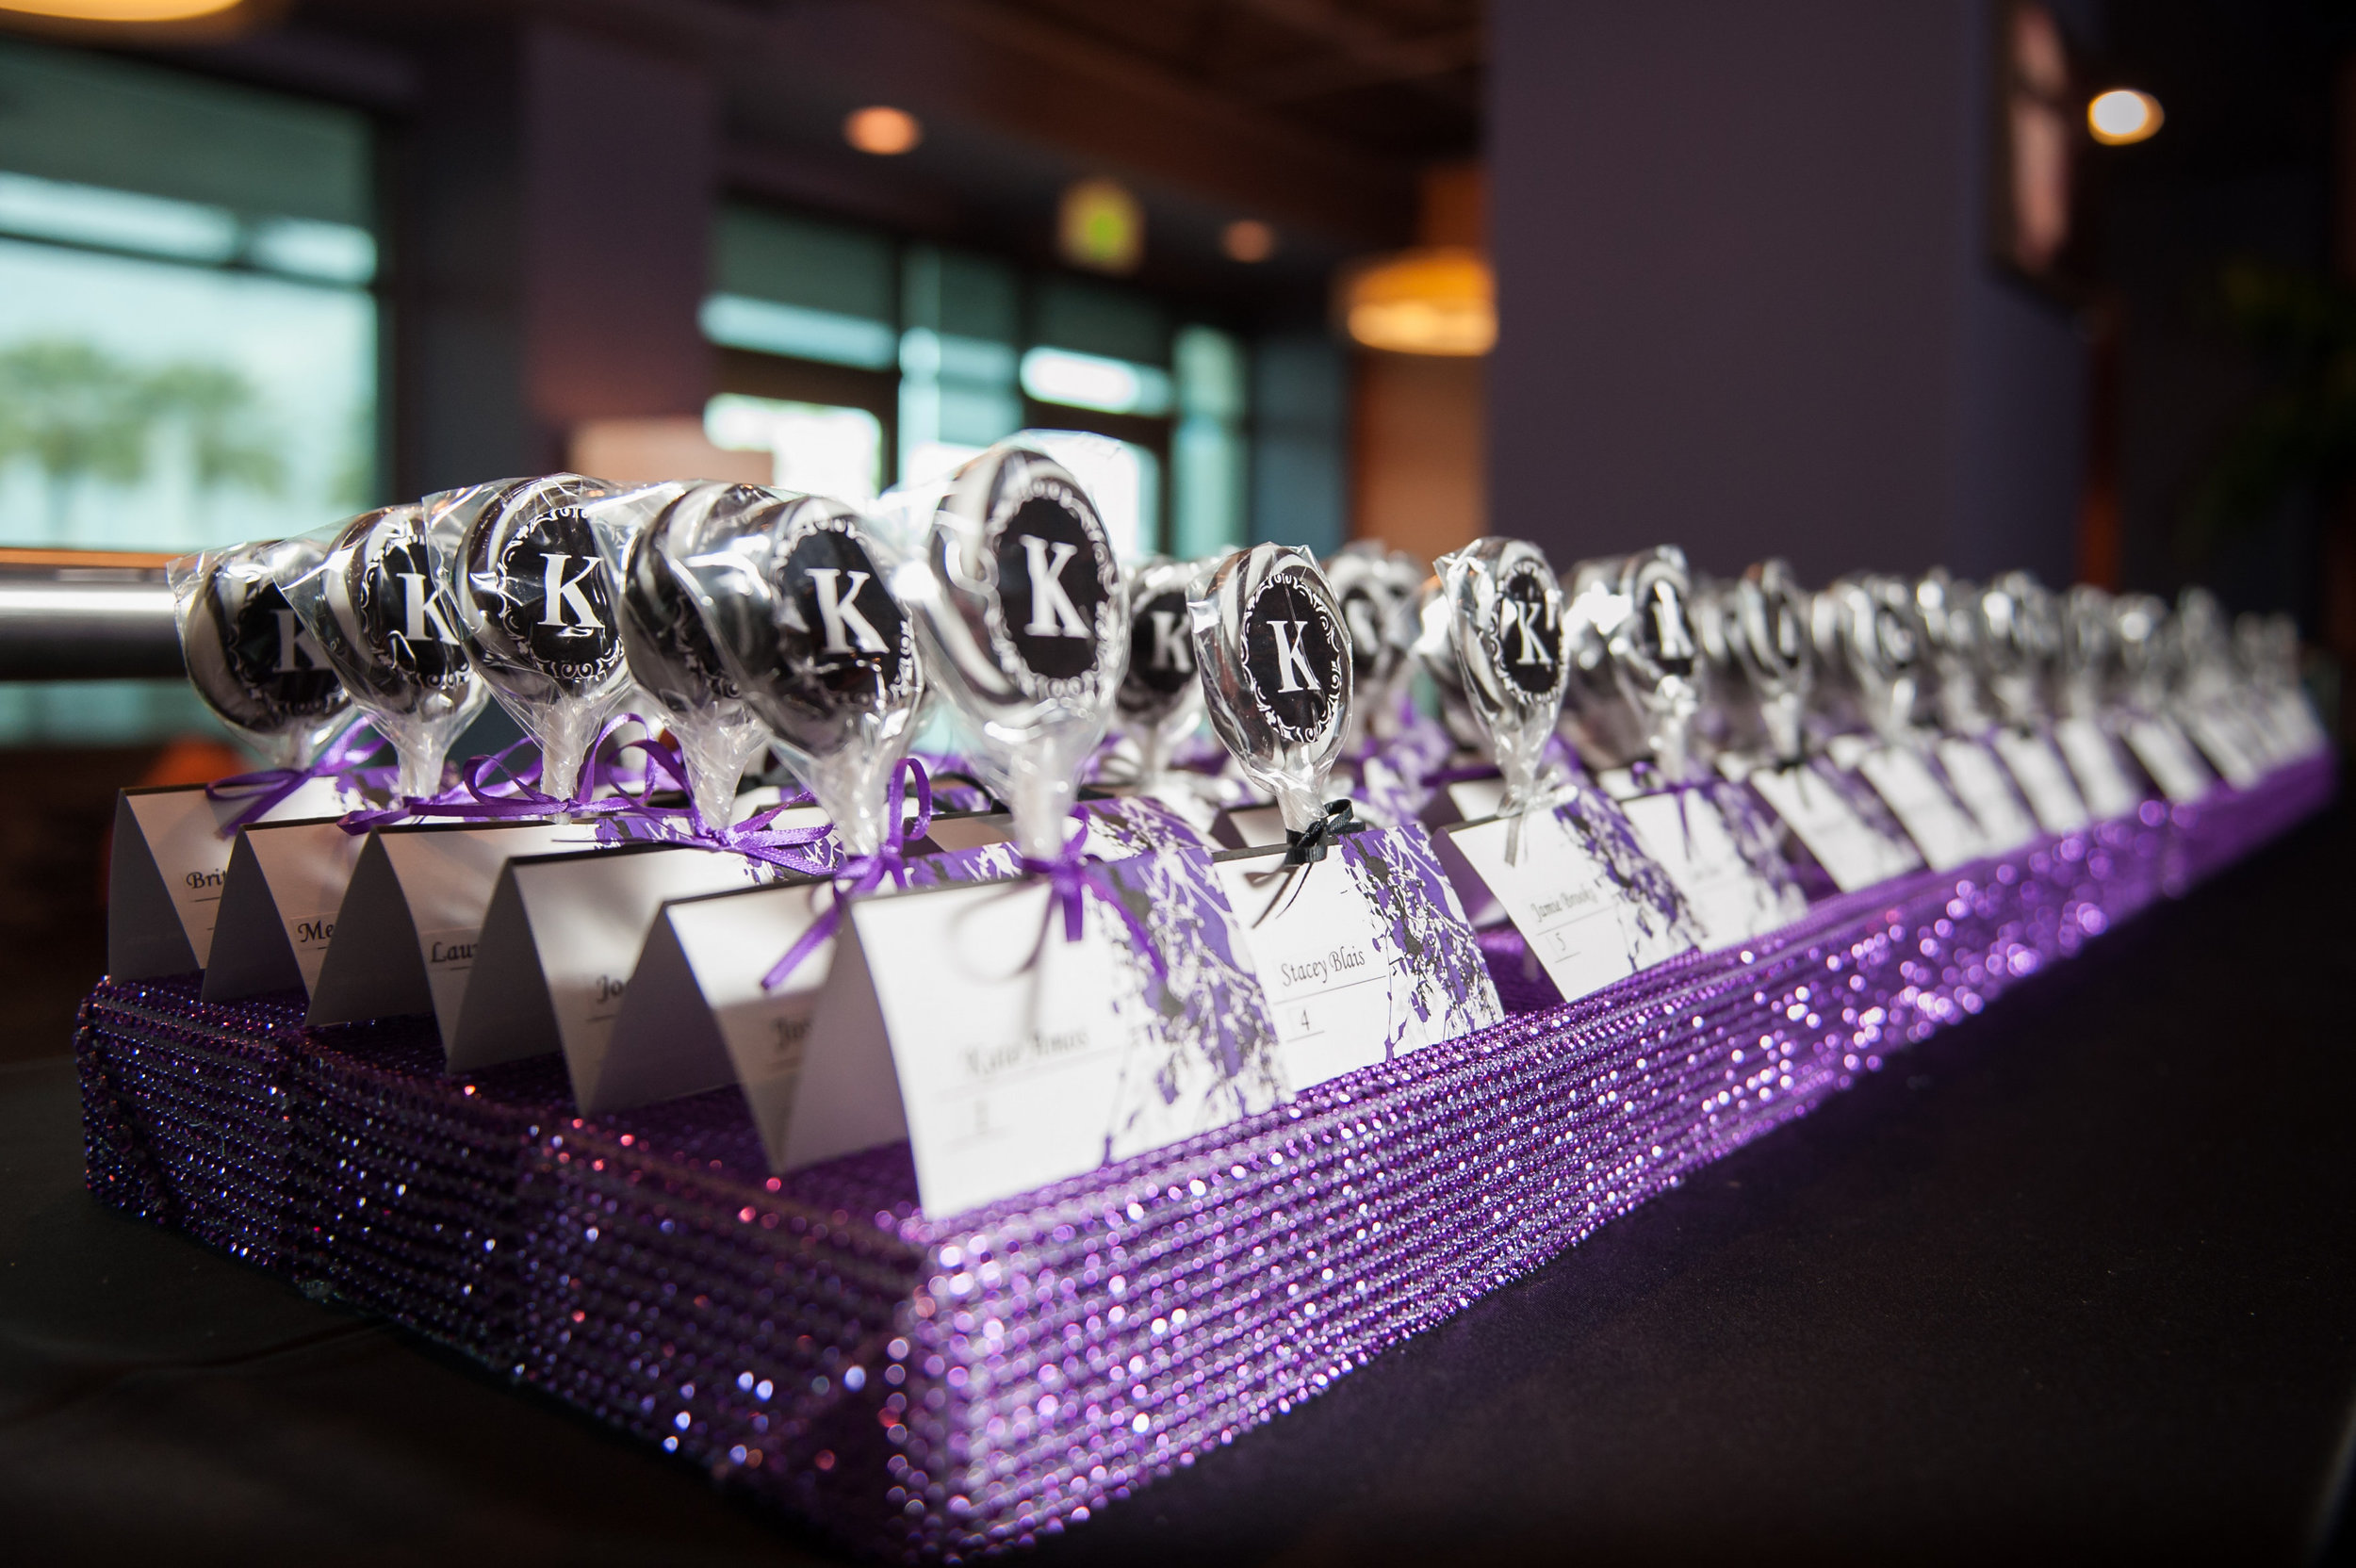 Rows of swirled lollipop escort cards gave guests a glimpse into the sweet night in store...